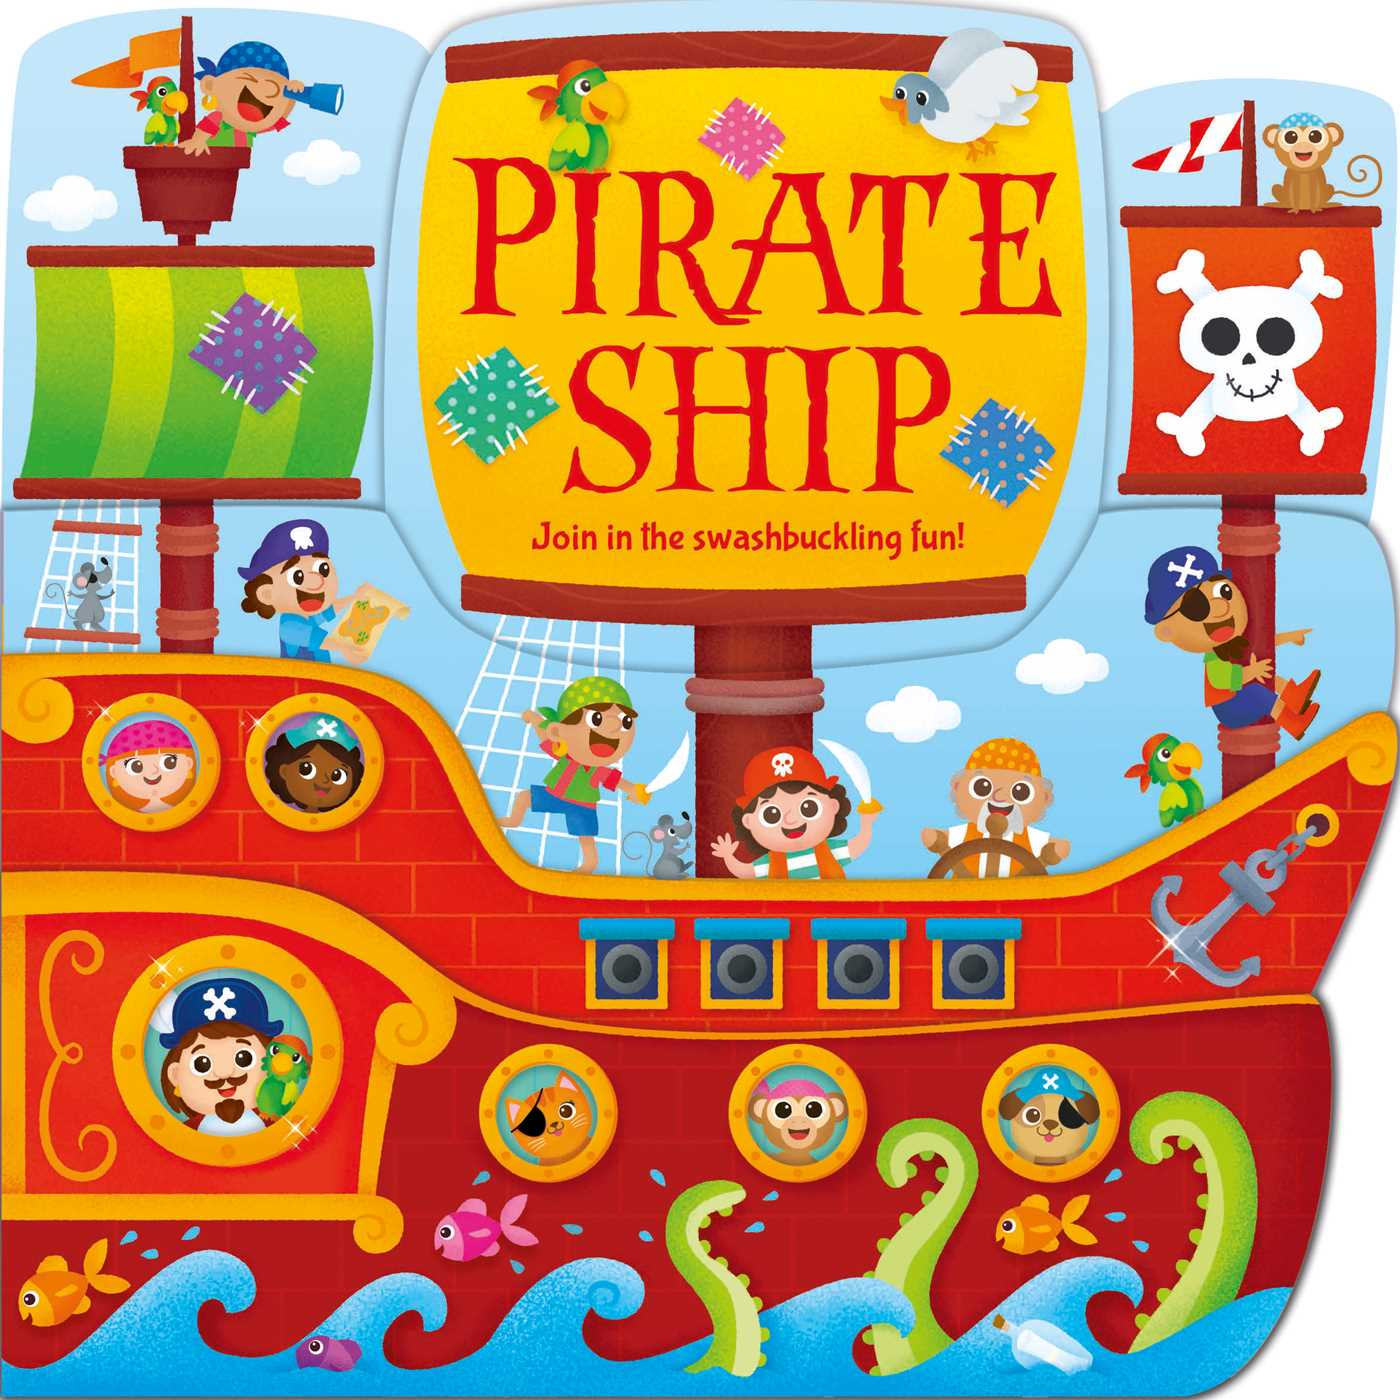 Pirate ship 9781499880656 hr